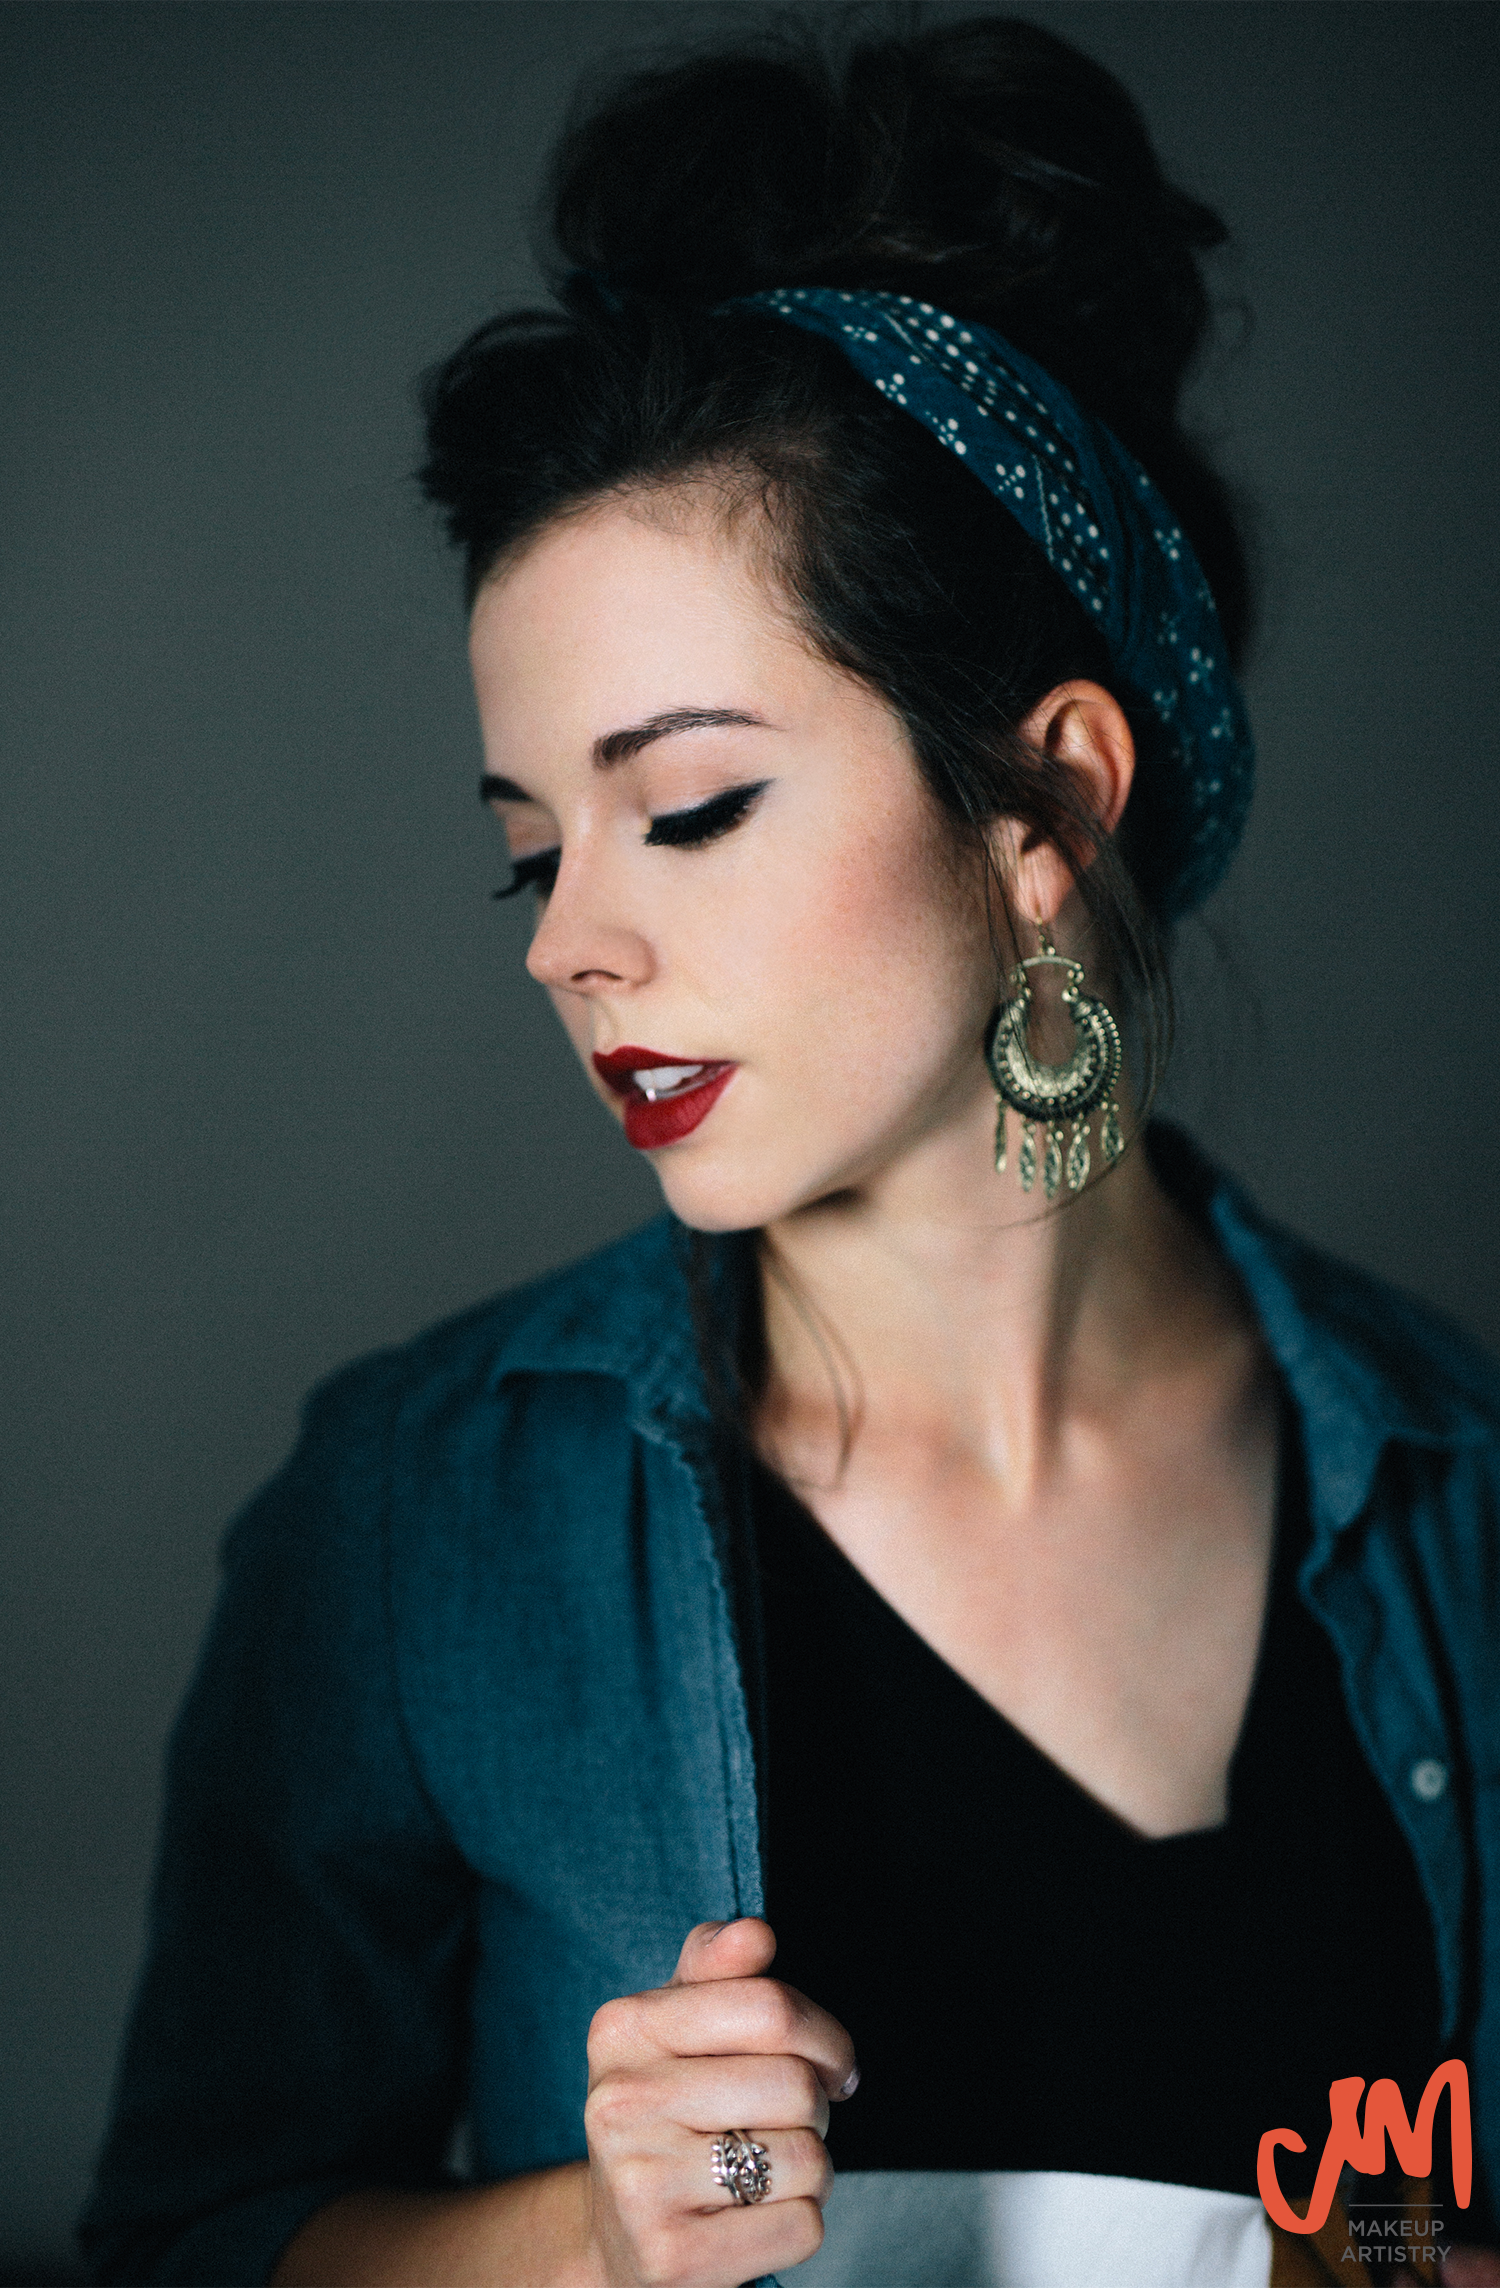 red lip winged eyeliner beauty makeup photoshoot musician mandolin player Sierra Hull messy bun nashville